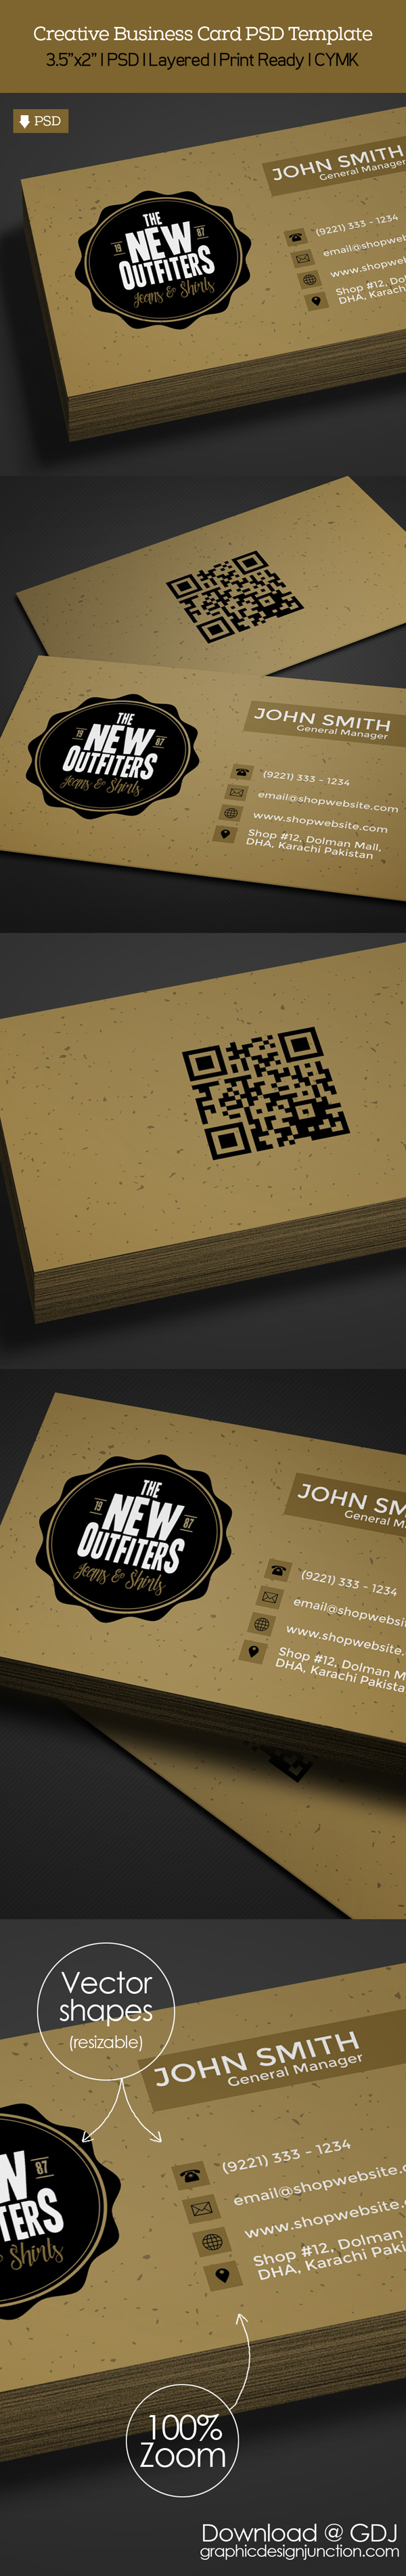 Freebie vintage business card psd template freebies graphic free vintage business card template preview reheart Images